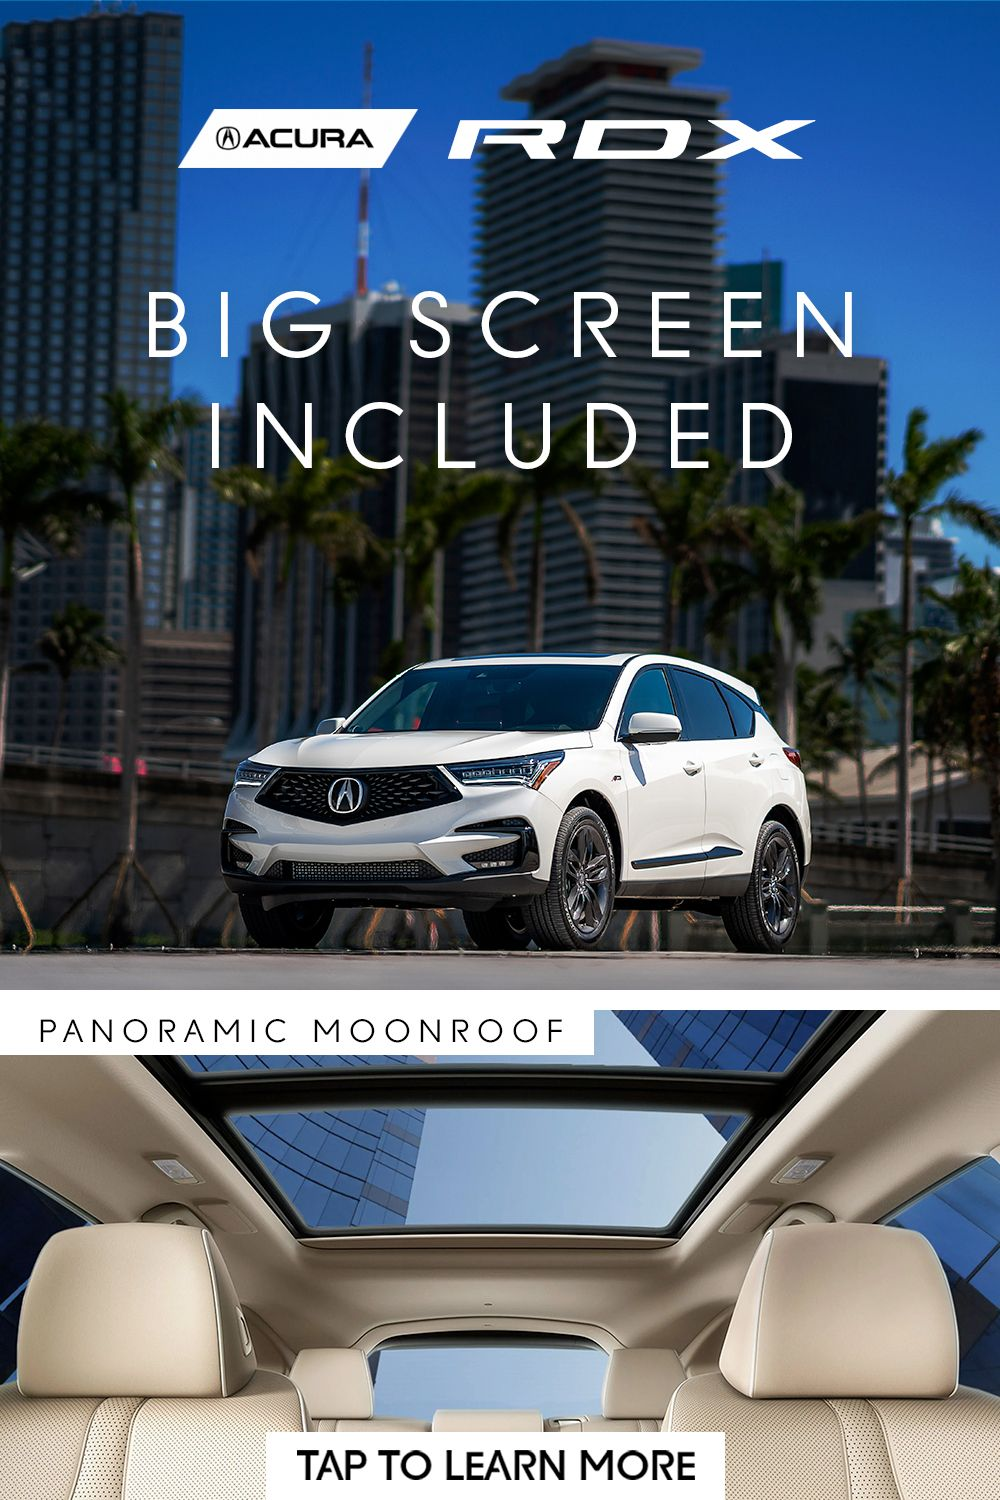 The 2020 Acura Rdx Current Offers As Stunning As The 2020 Acura Rdx Small Luxury Cars Classic Cars Acura Rdx